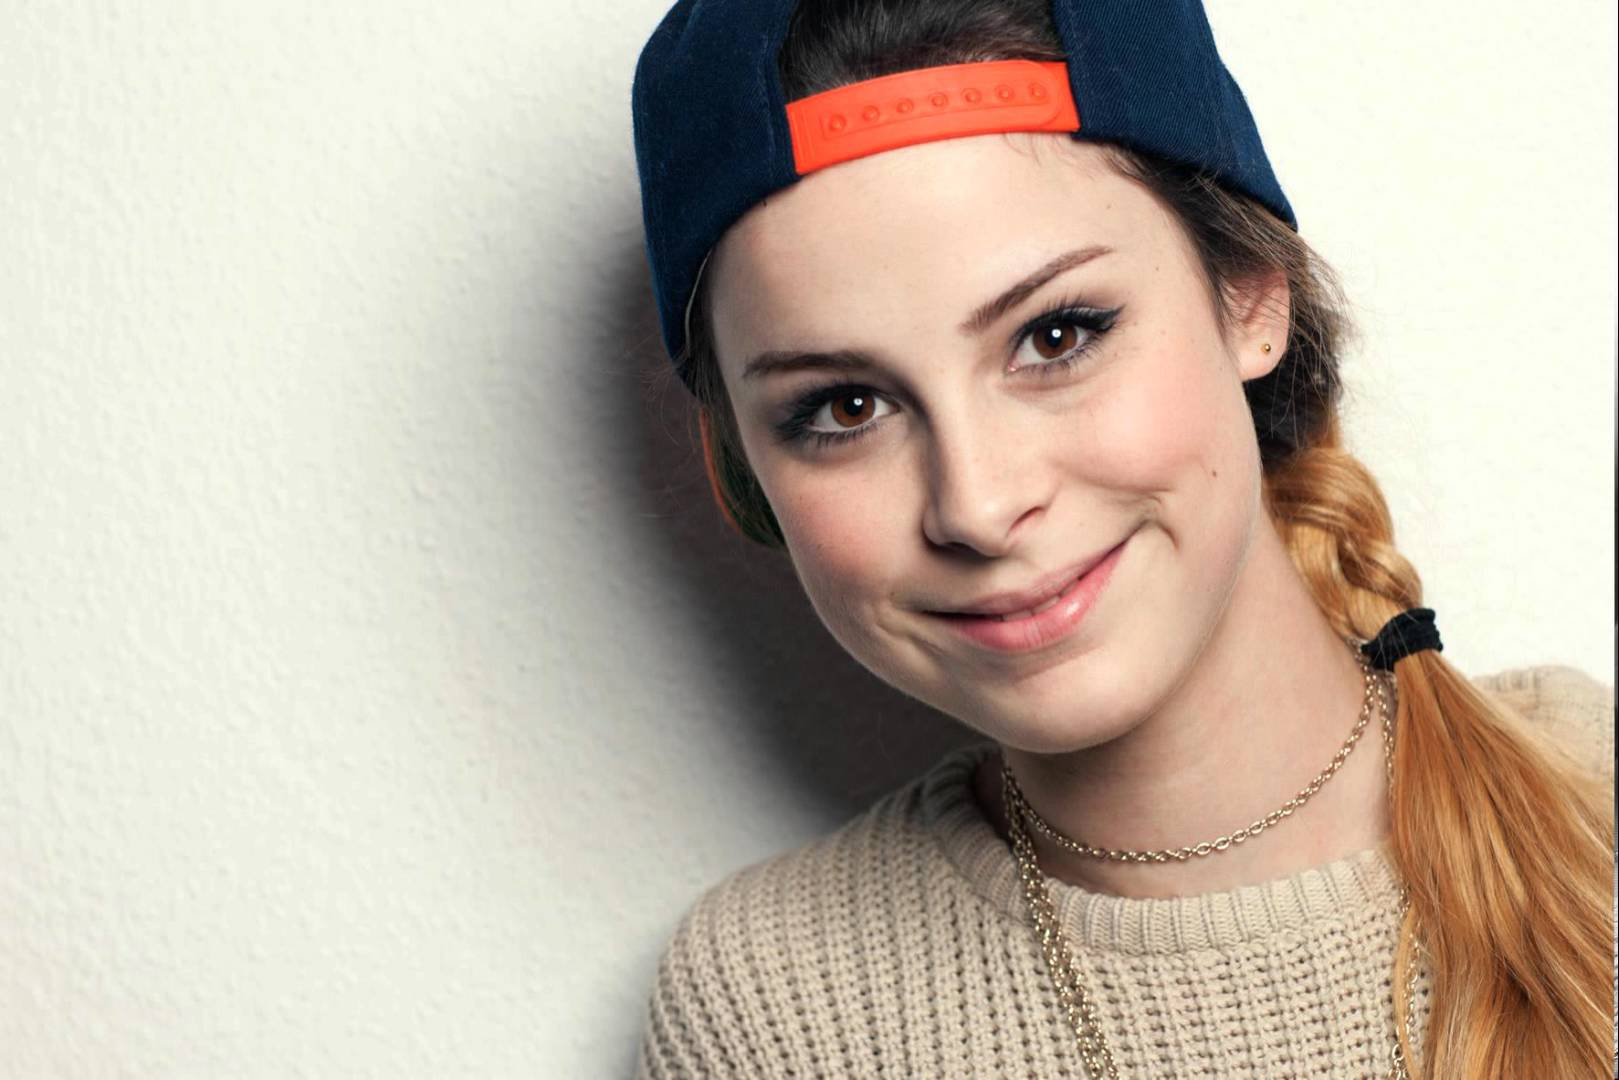 Lena Meyer Landrut Wallpapers Images Photos Pictures Backgrounds